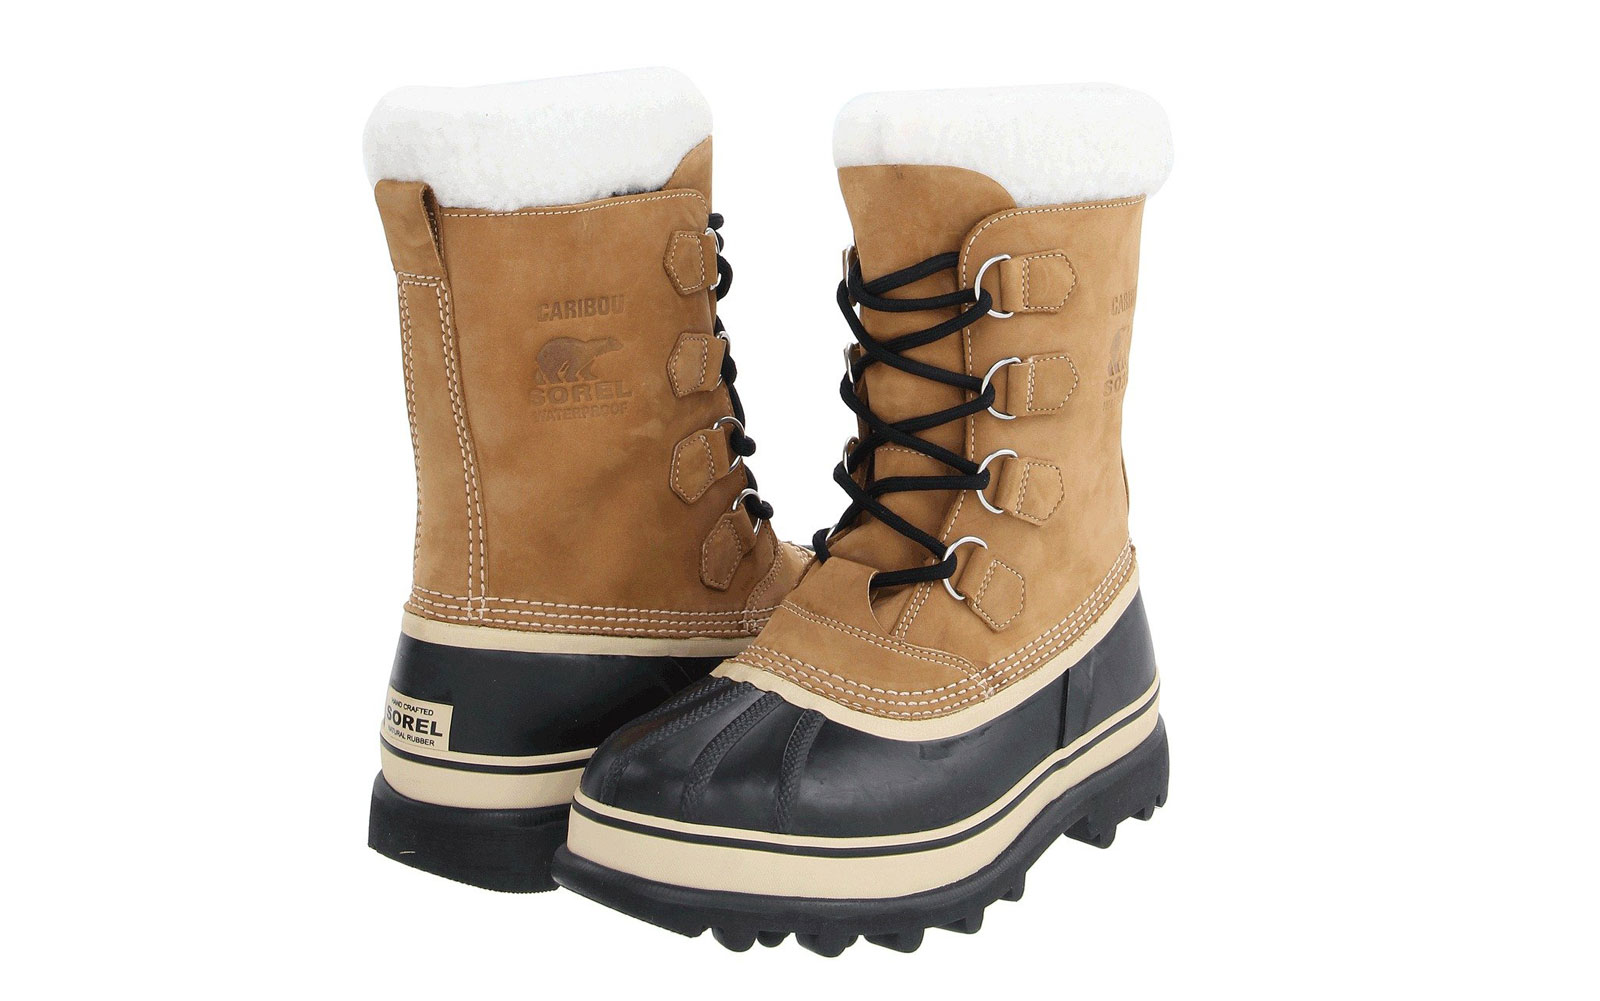 Men's Tall Tan Snow Boots with Sherpa